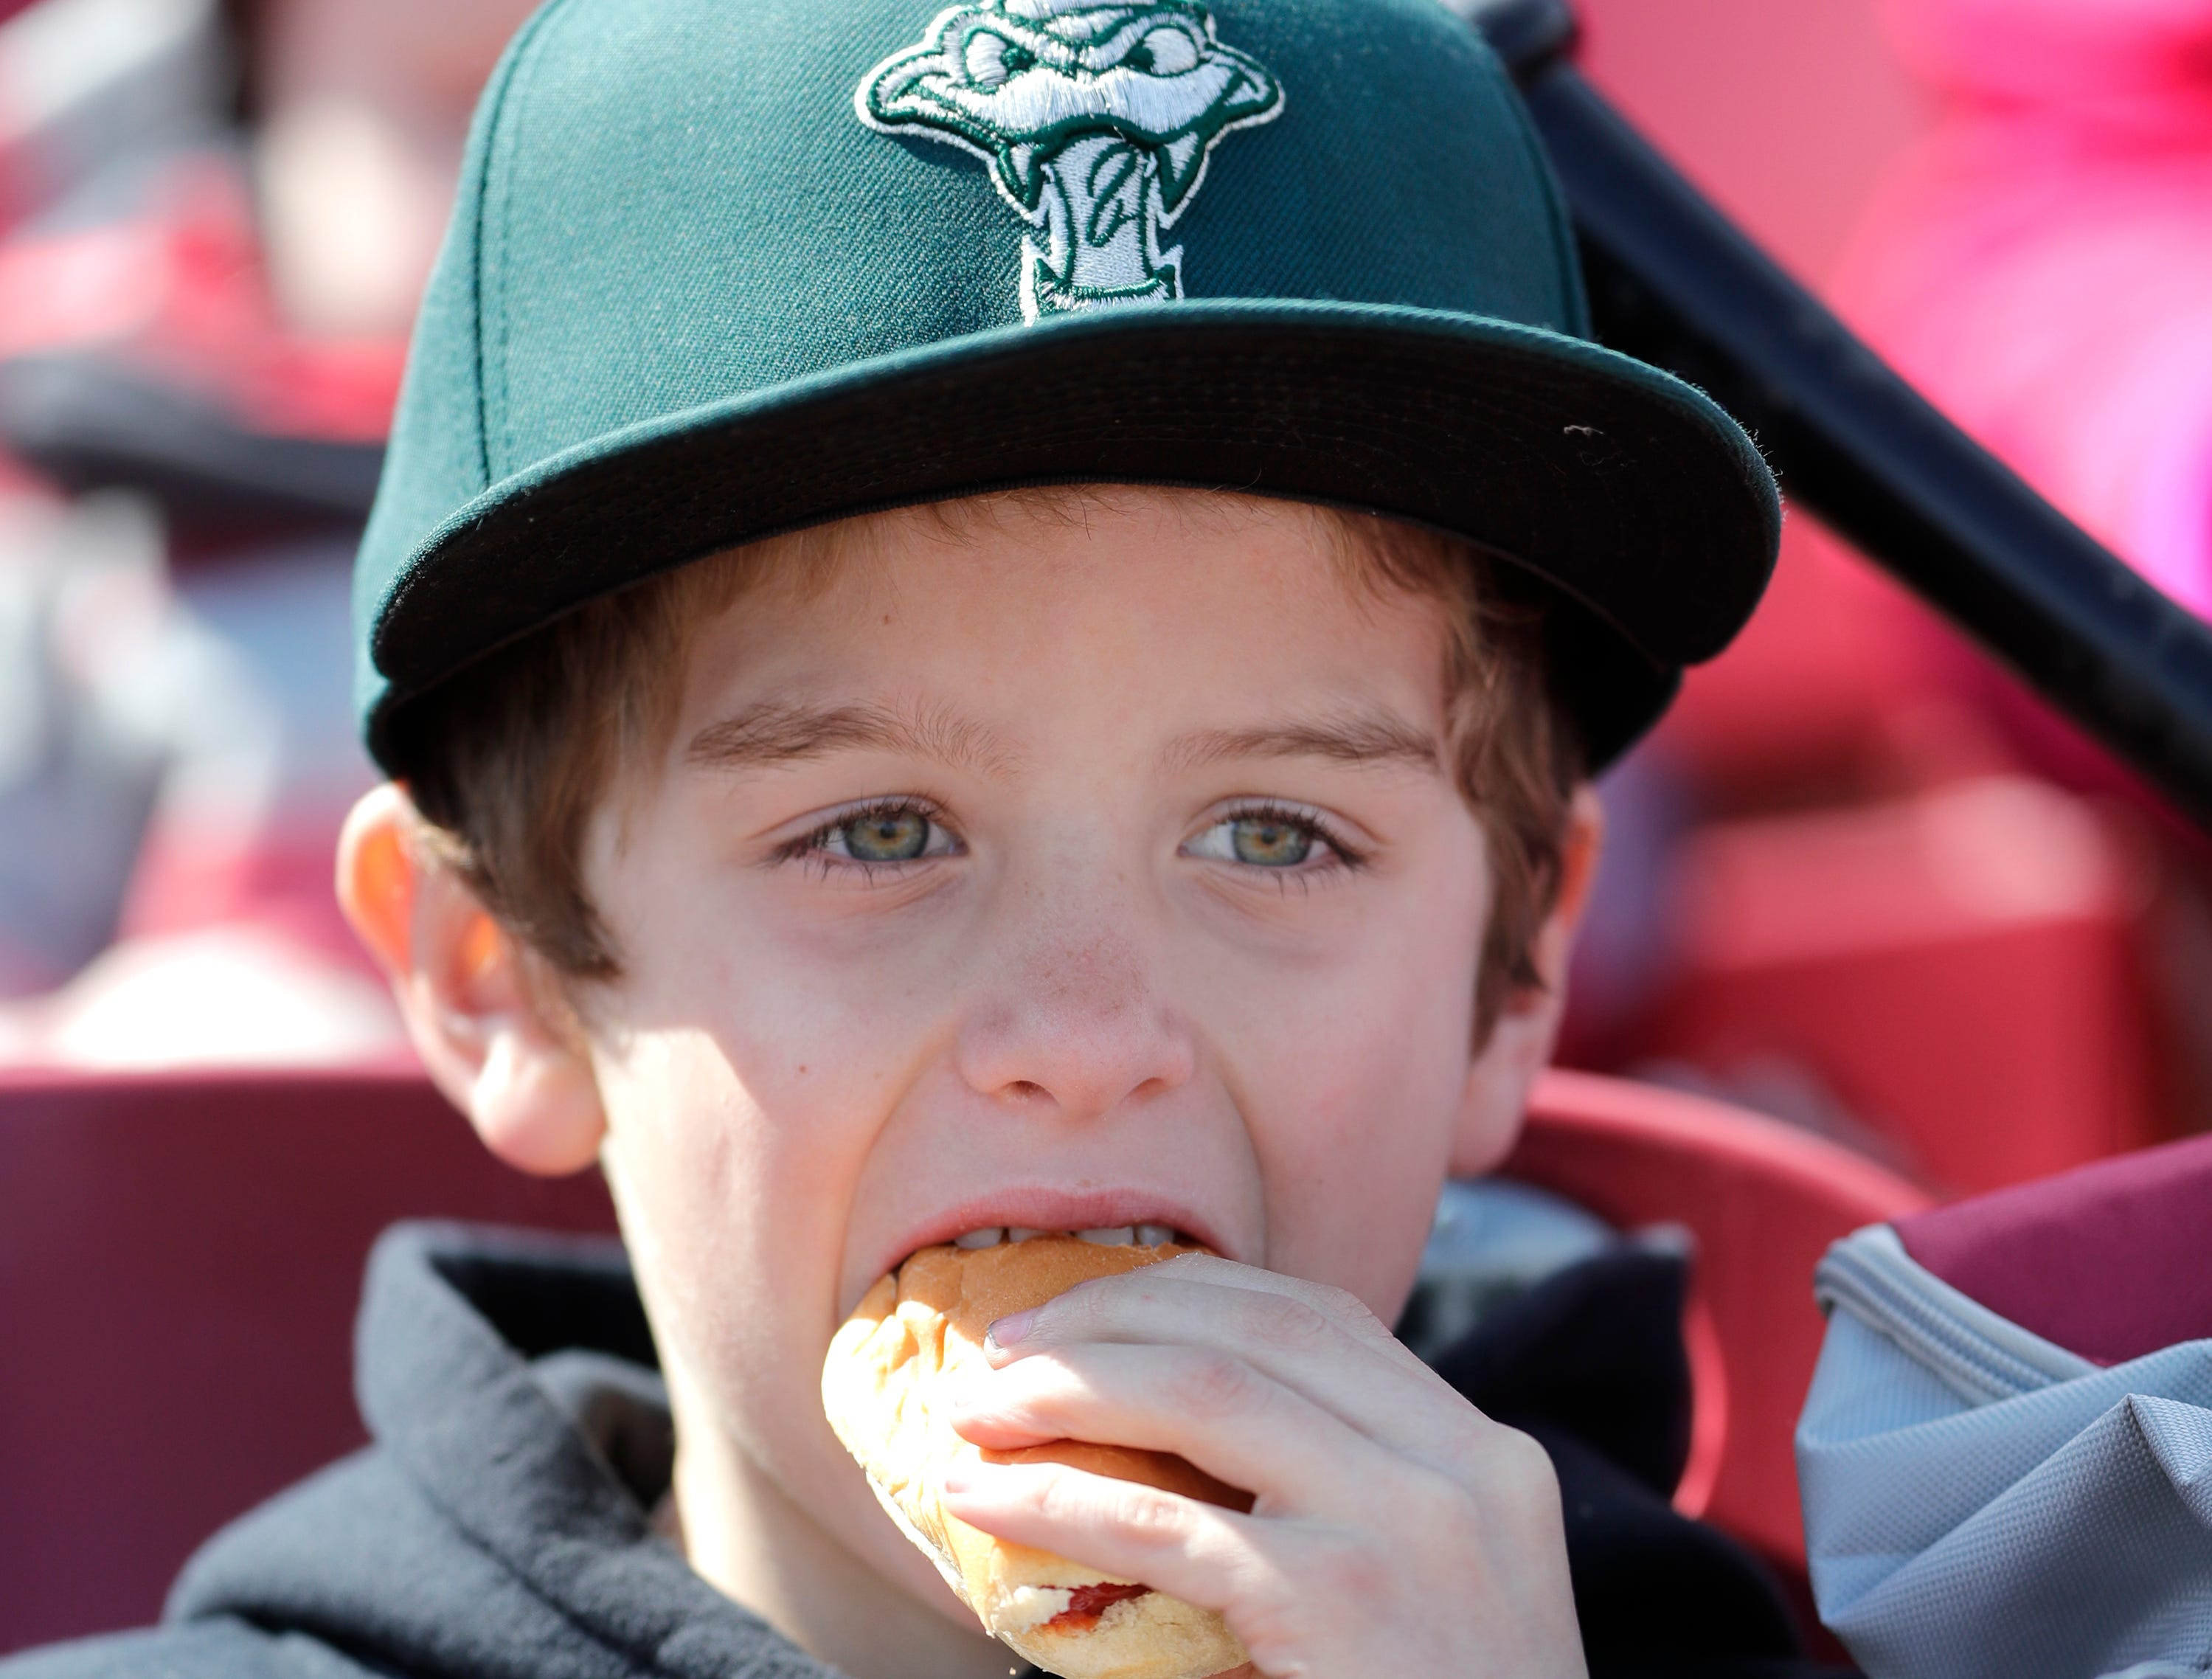 Dylan Bongiovanni during the Wisconsin Timber Rattlers' Fan Fest at Neuroscience Group Field at Fox Cities Stadium on Tuesday, April 2, 2019, in Grand Chute, Wis.Wm. Glasheen/USA TODAY NETWORK-Wisconsin.